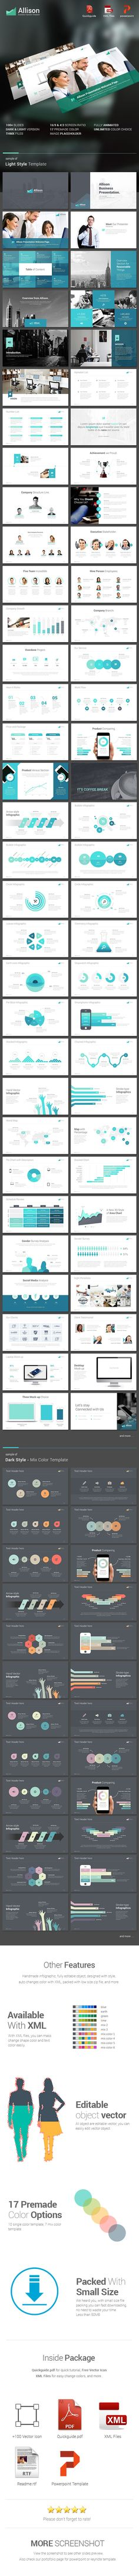 Allison - Creative Powerpoint Template #design #slides Buy Now: http://graphicriver.net/item/allison-creative-powerpoint-template/12925875?ref=ksioks